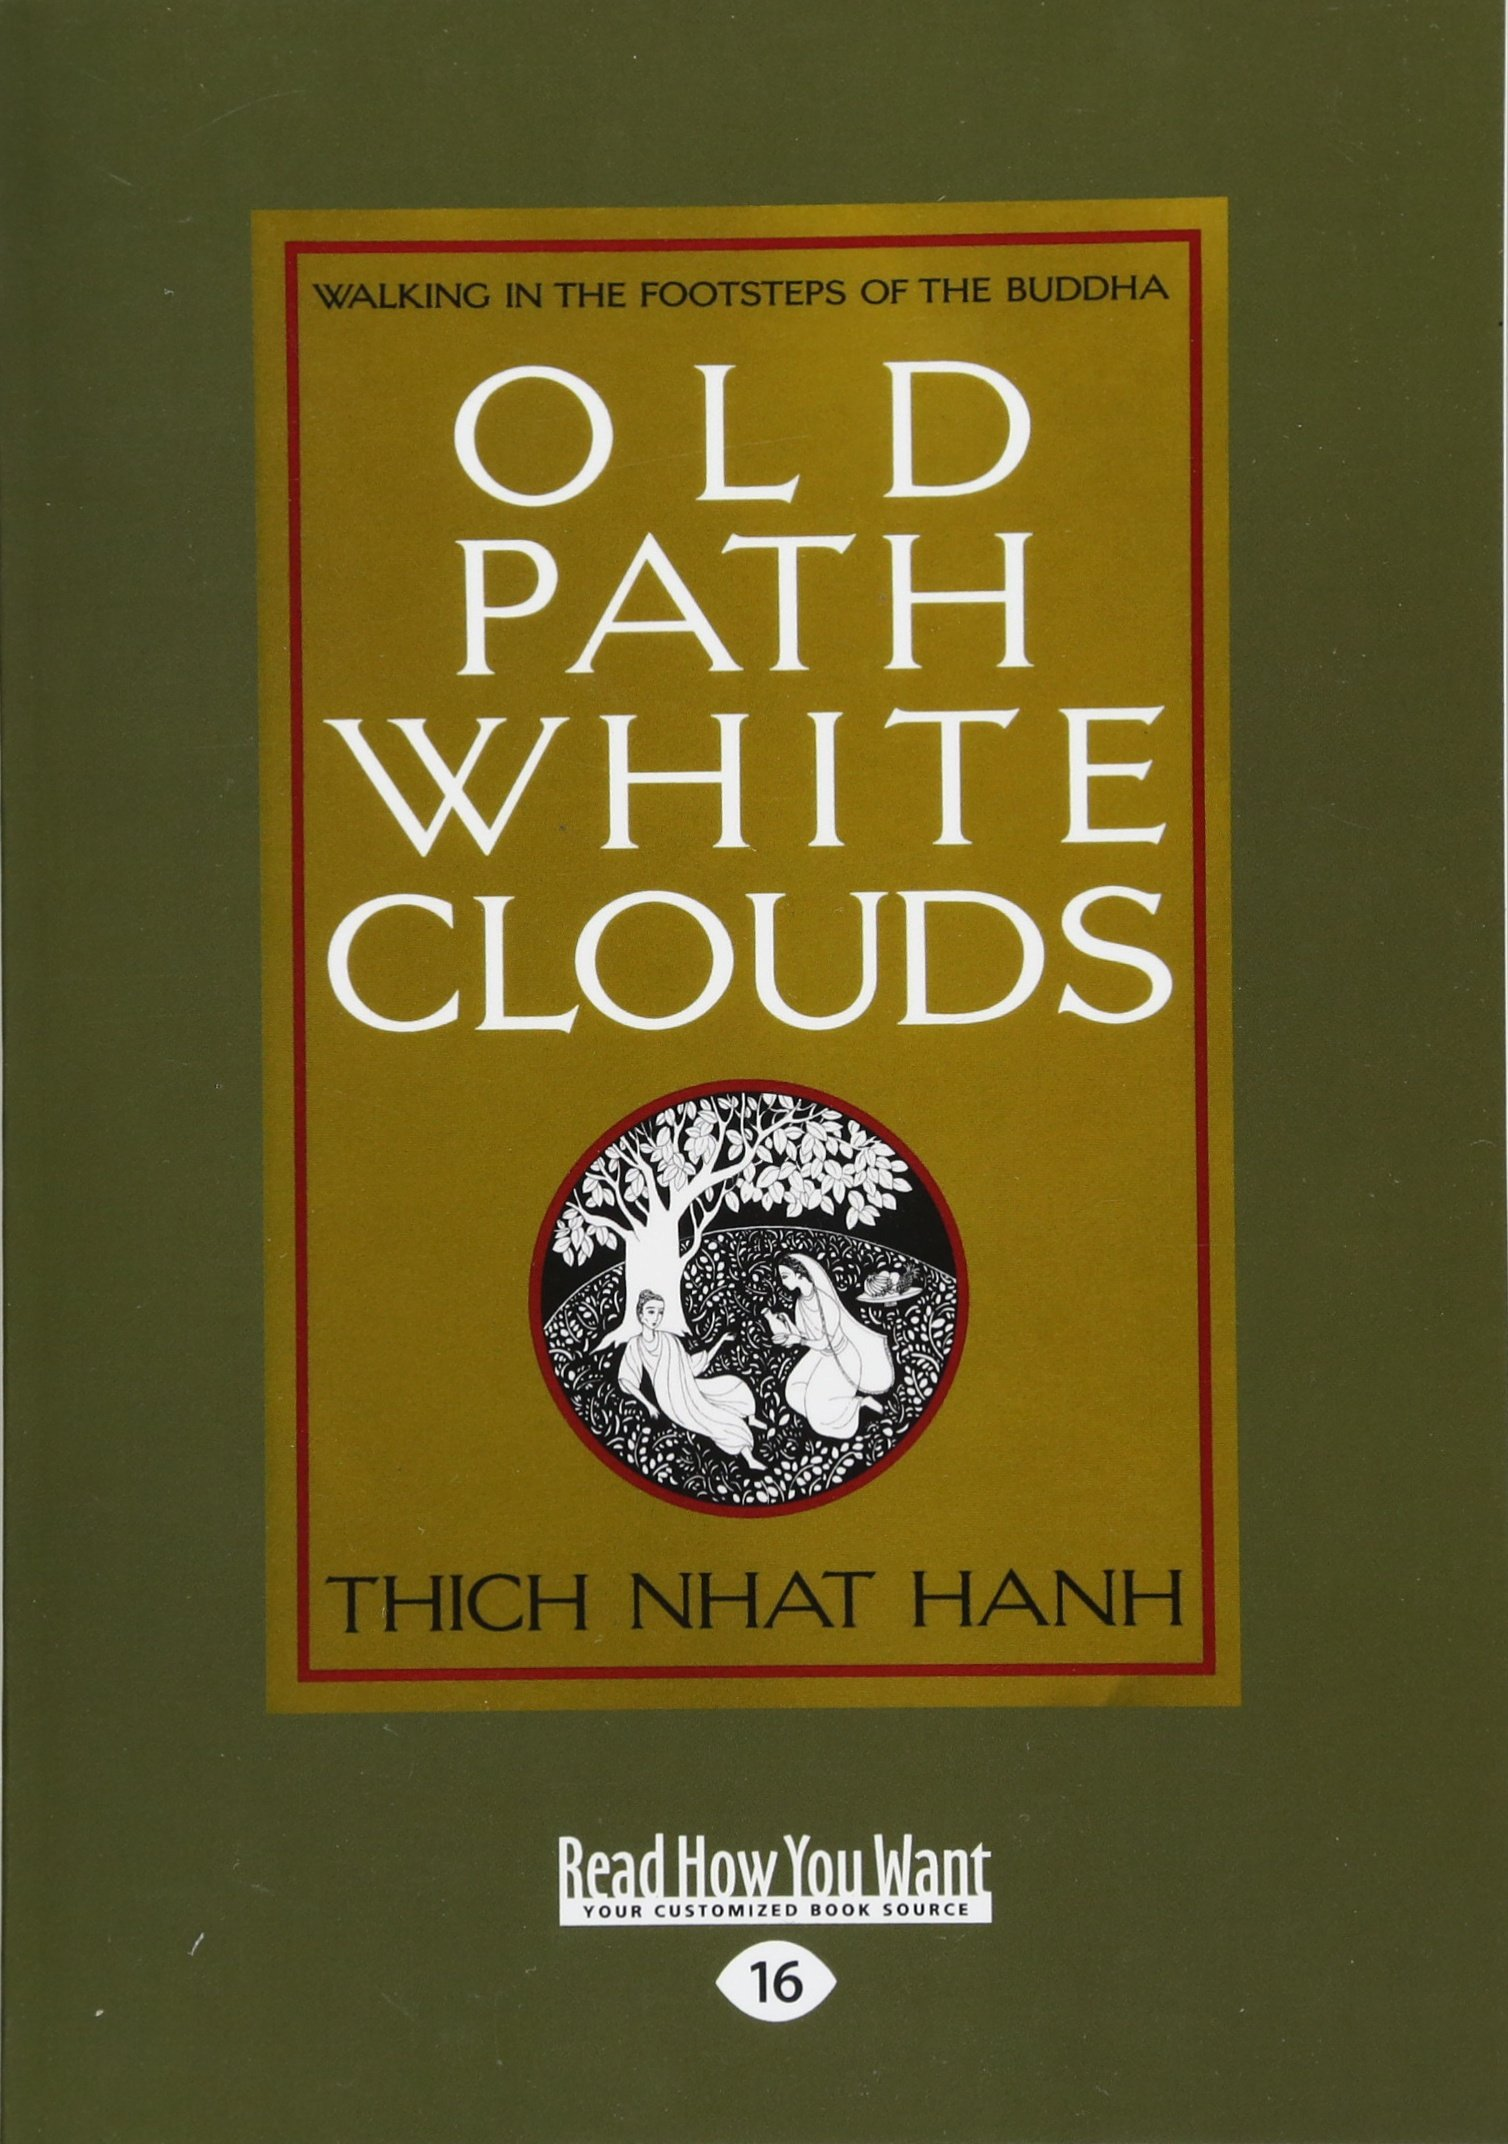 Old Path White Clouds (Volume 1 of 2): Walking in the Footsteps of the Buddha pdf epub